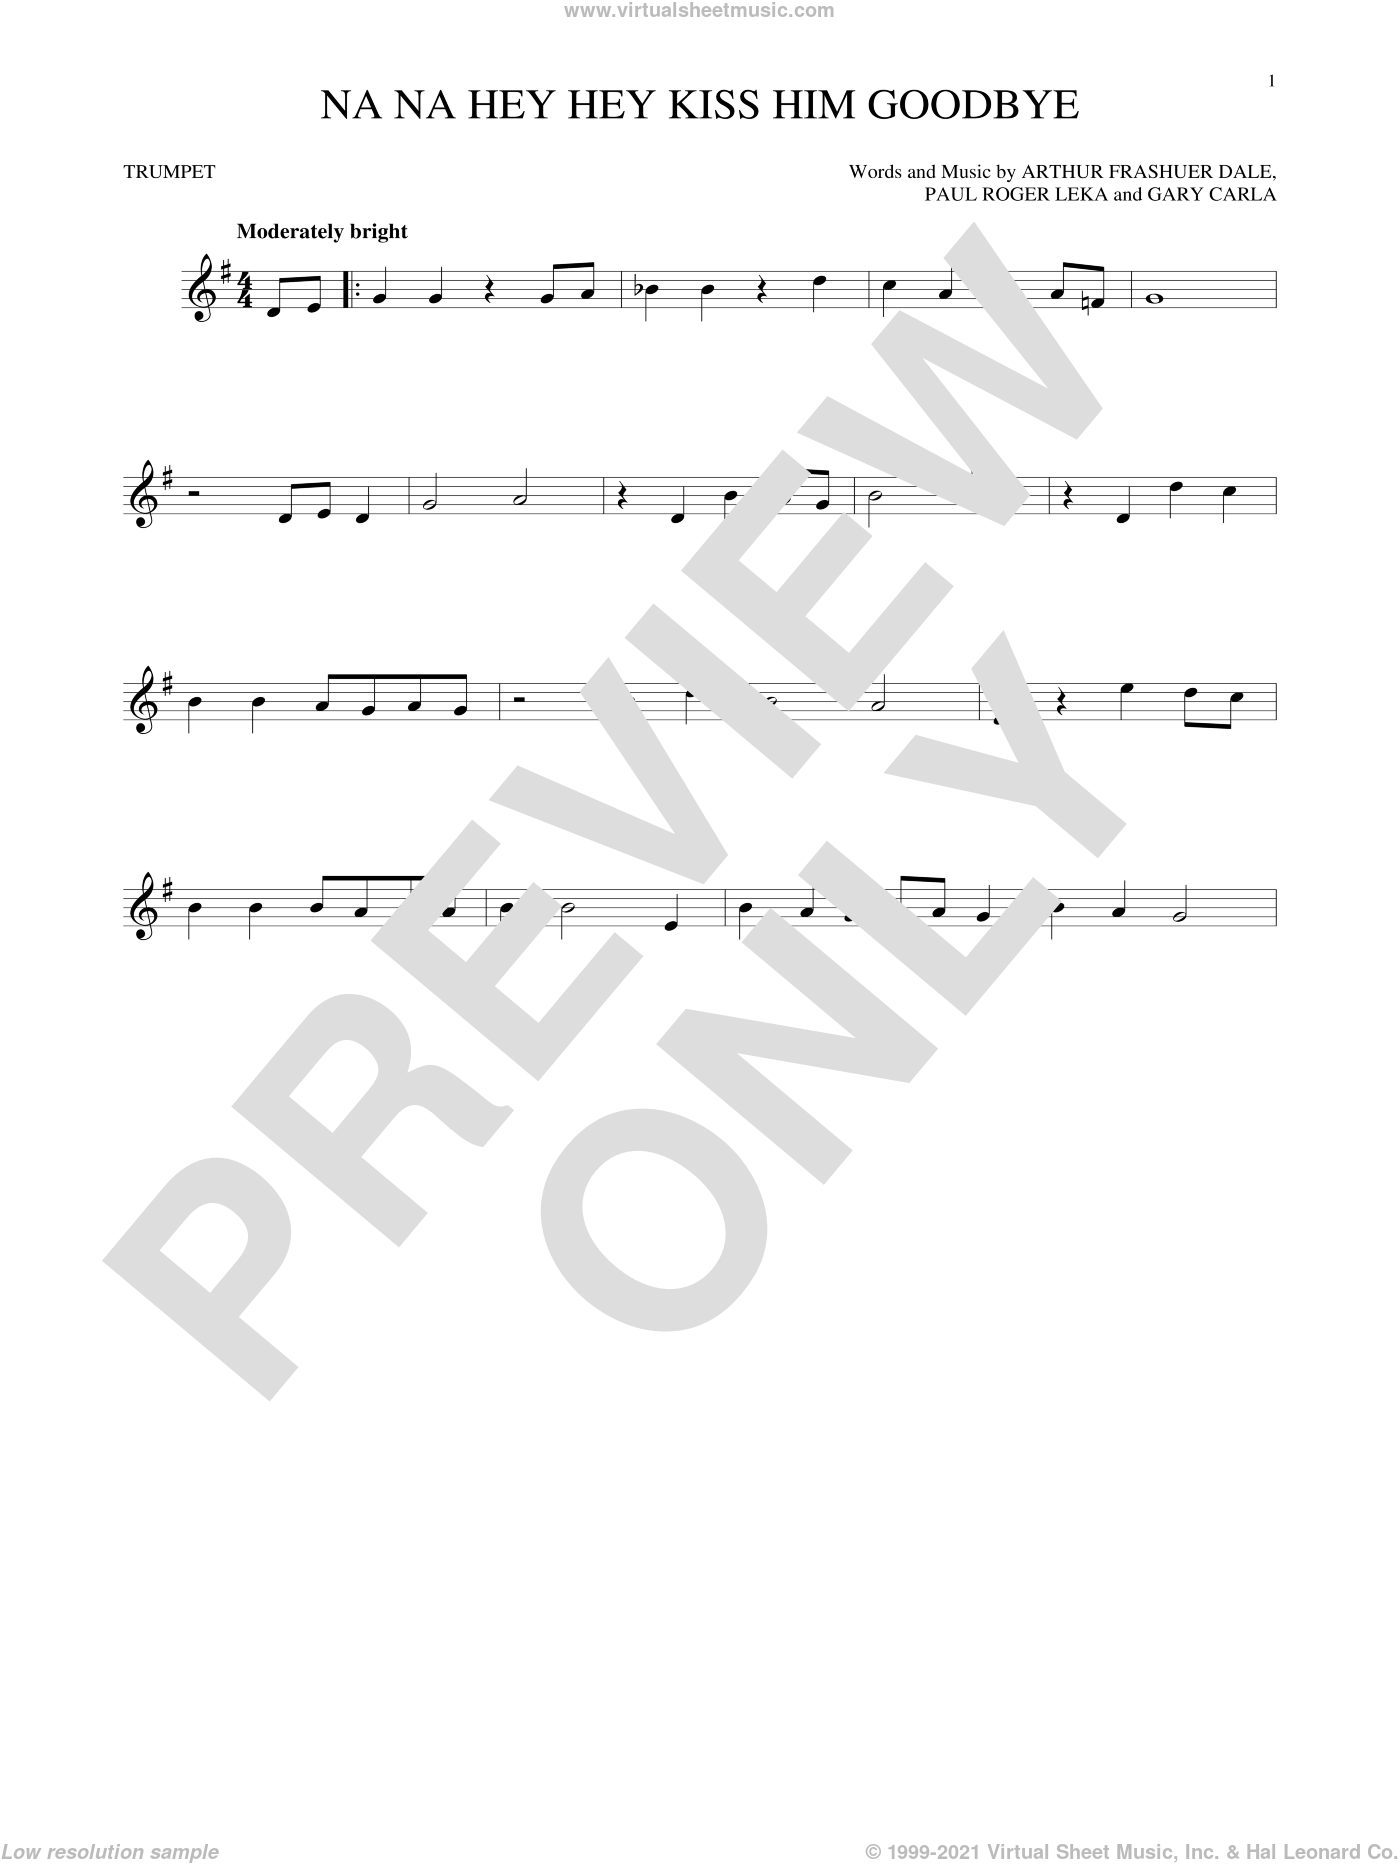 Na Na Hey Hey Kiss Him Goodbye sheet music for trumpet solo by Paul Leka